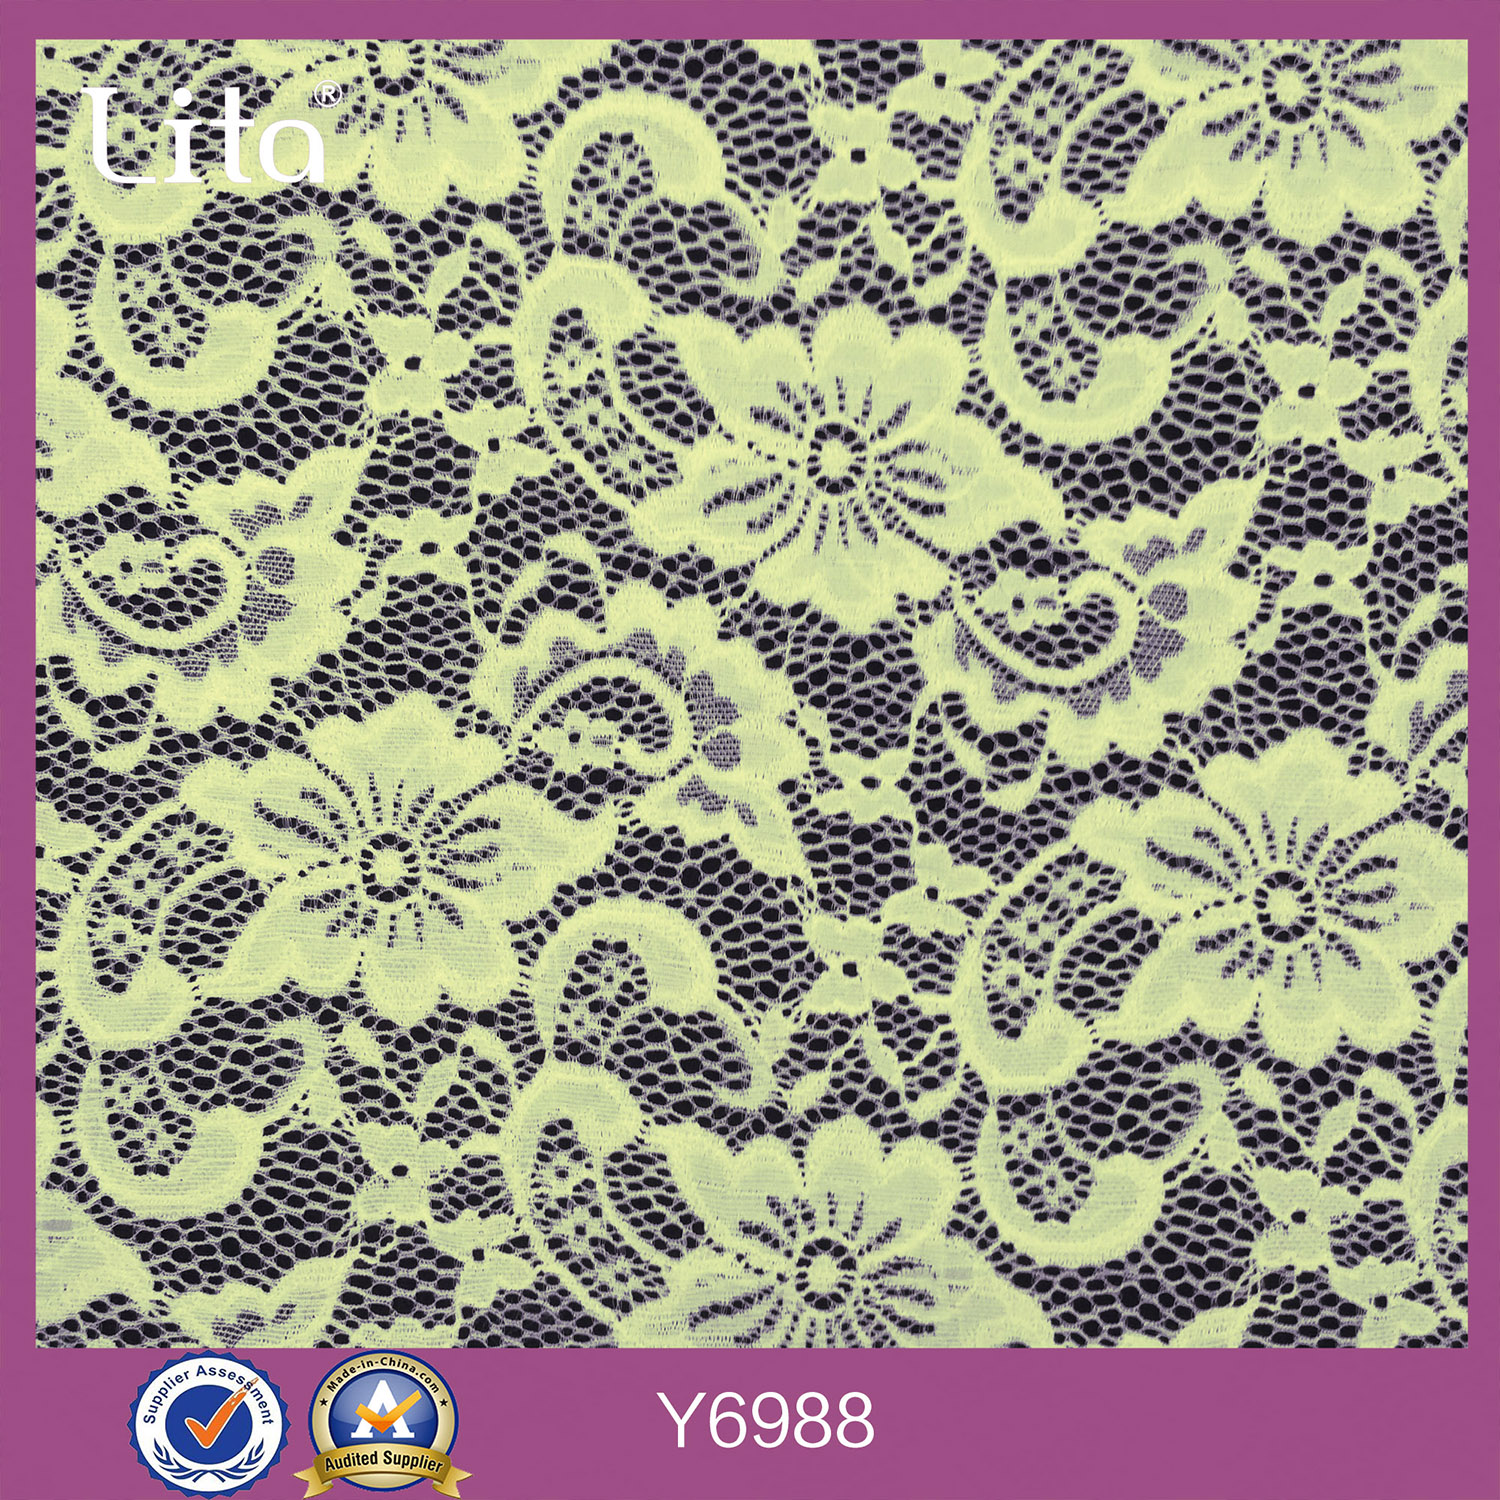 OTM 8000+ design warp knitted lace fabric